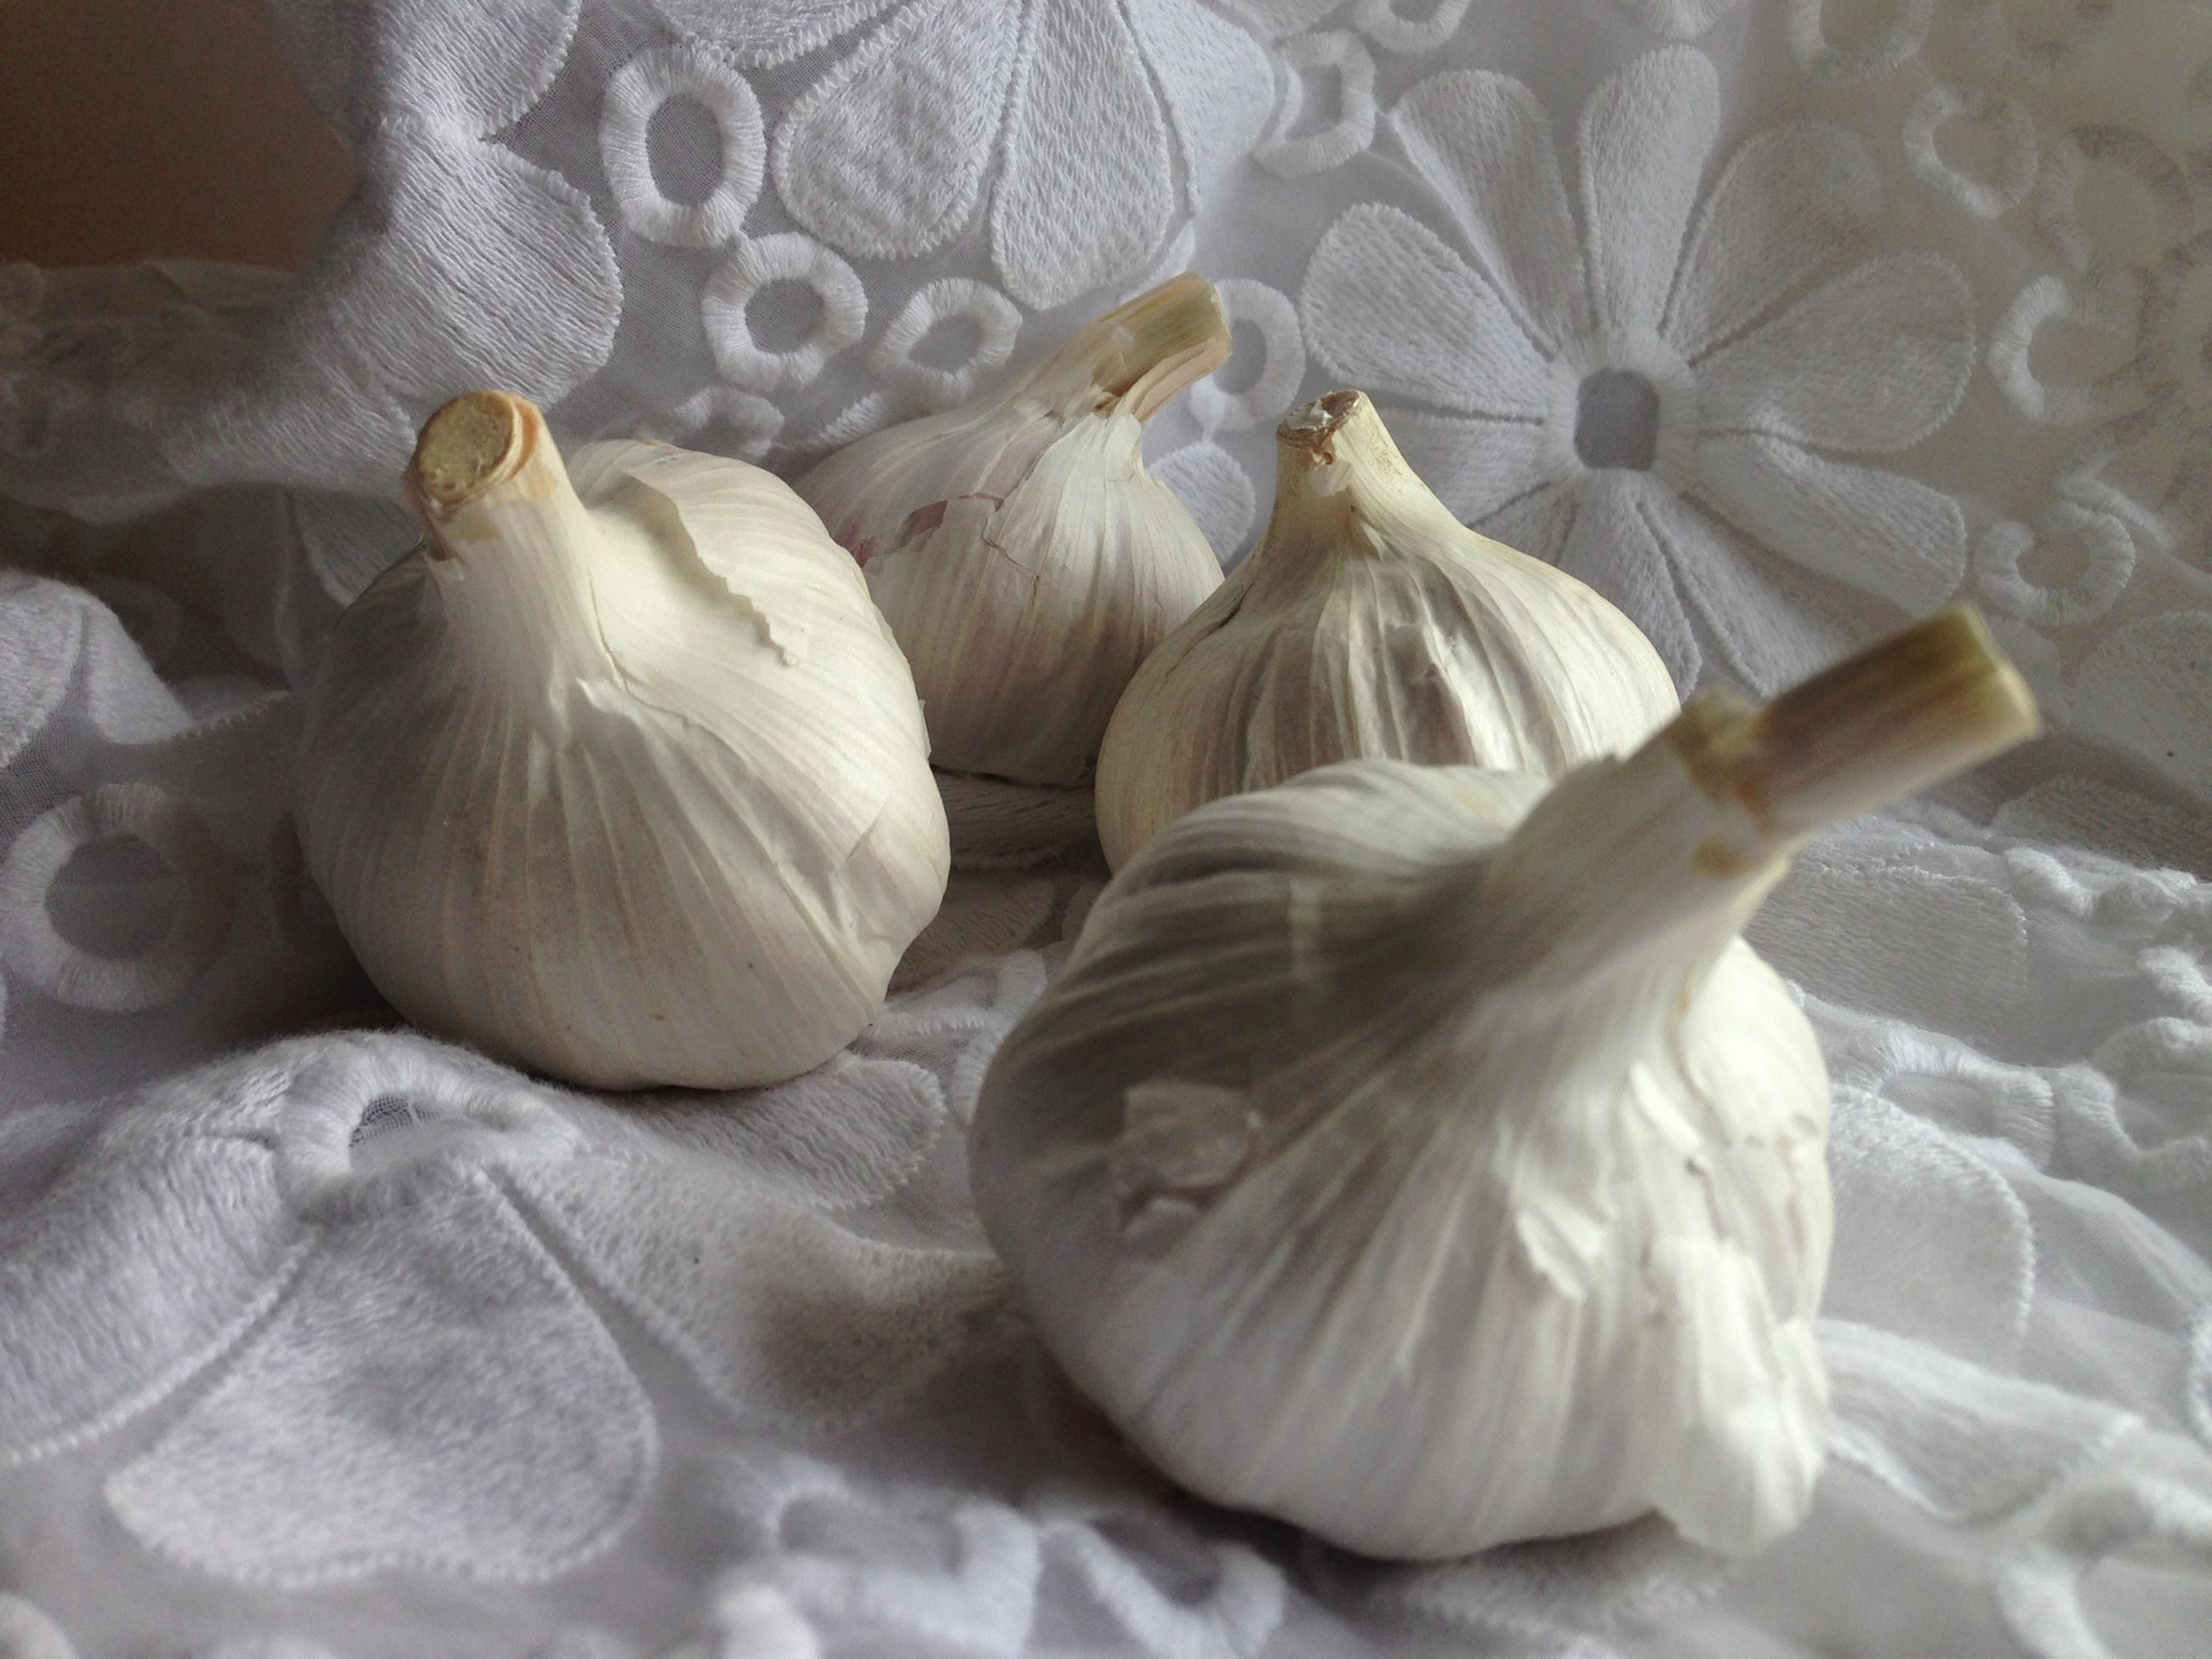 indoors, healthy eating, food, garlic bulb, garlic, food and drink, freshness, no people, close-up, garlic clove